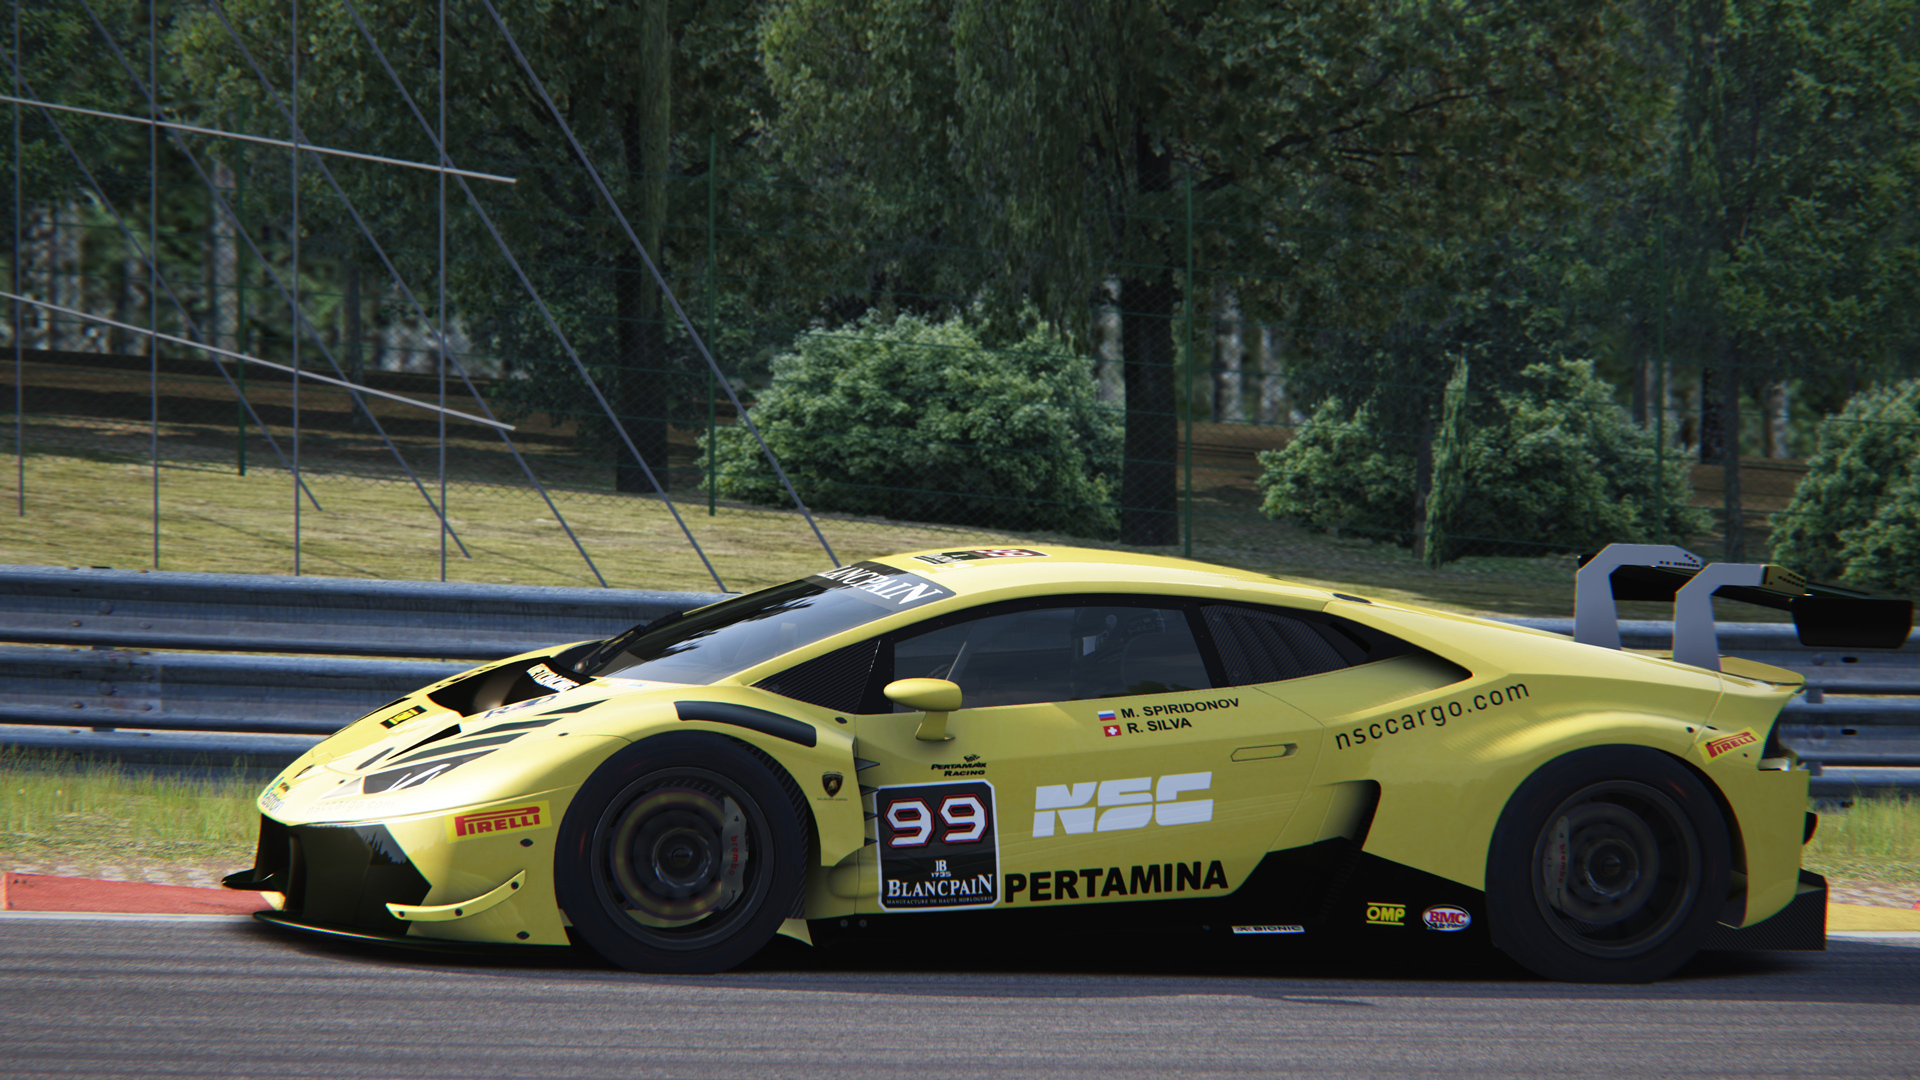 Screenshot_ks_lamborghini_huracan_gt3_spa_6-11-115-20-17-6.jpg